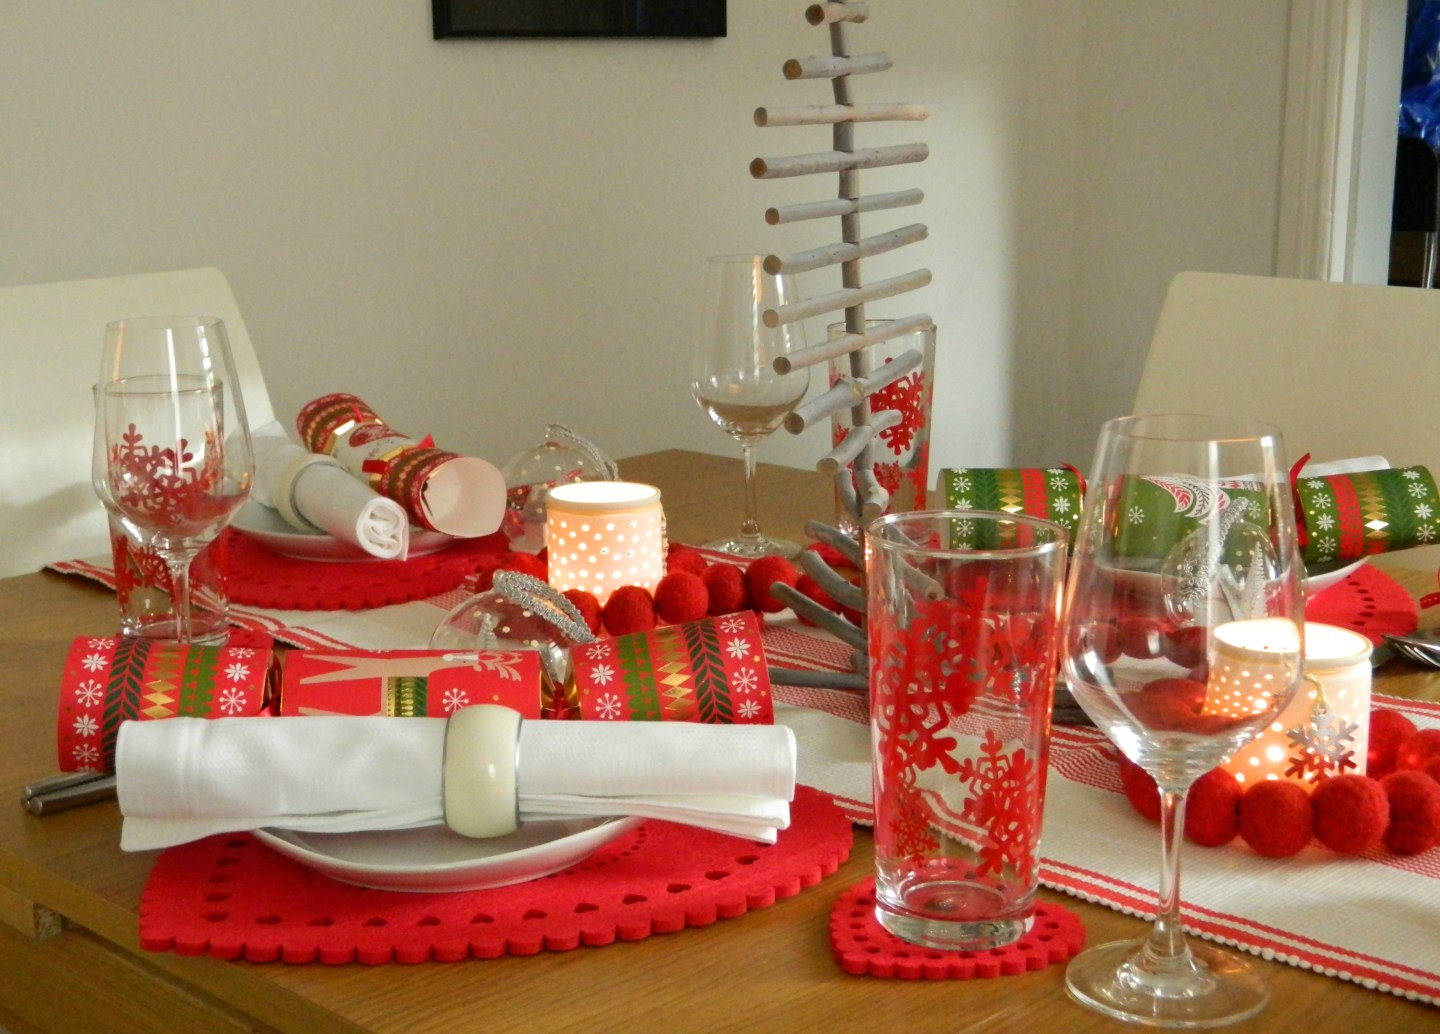 M&S dining table